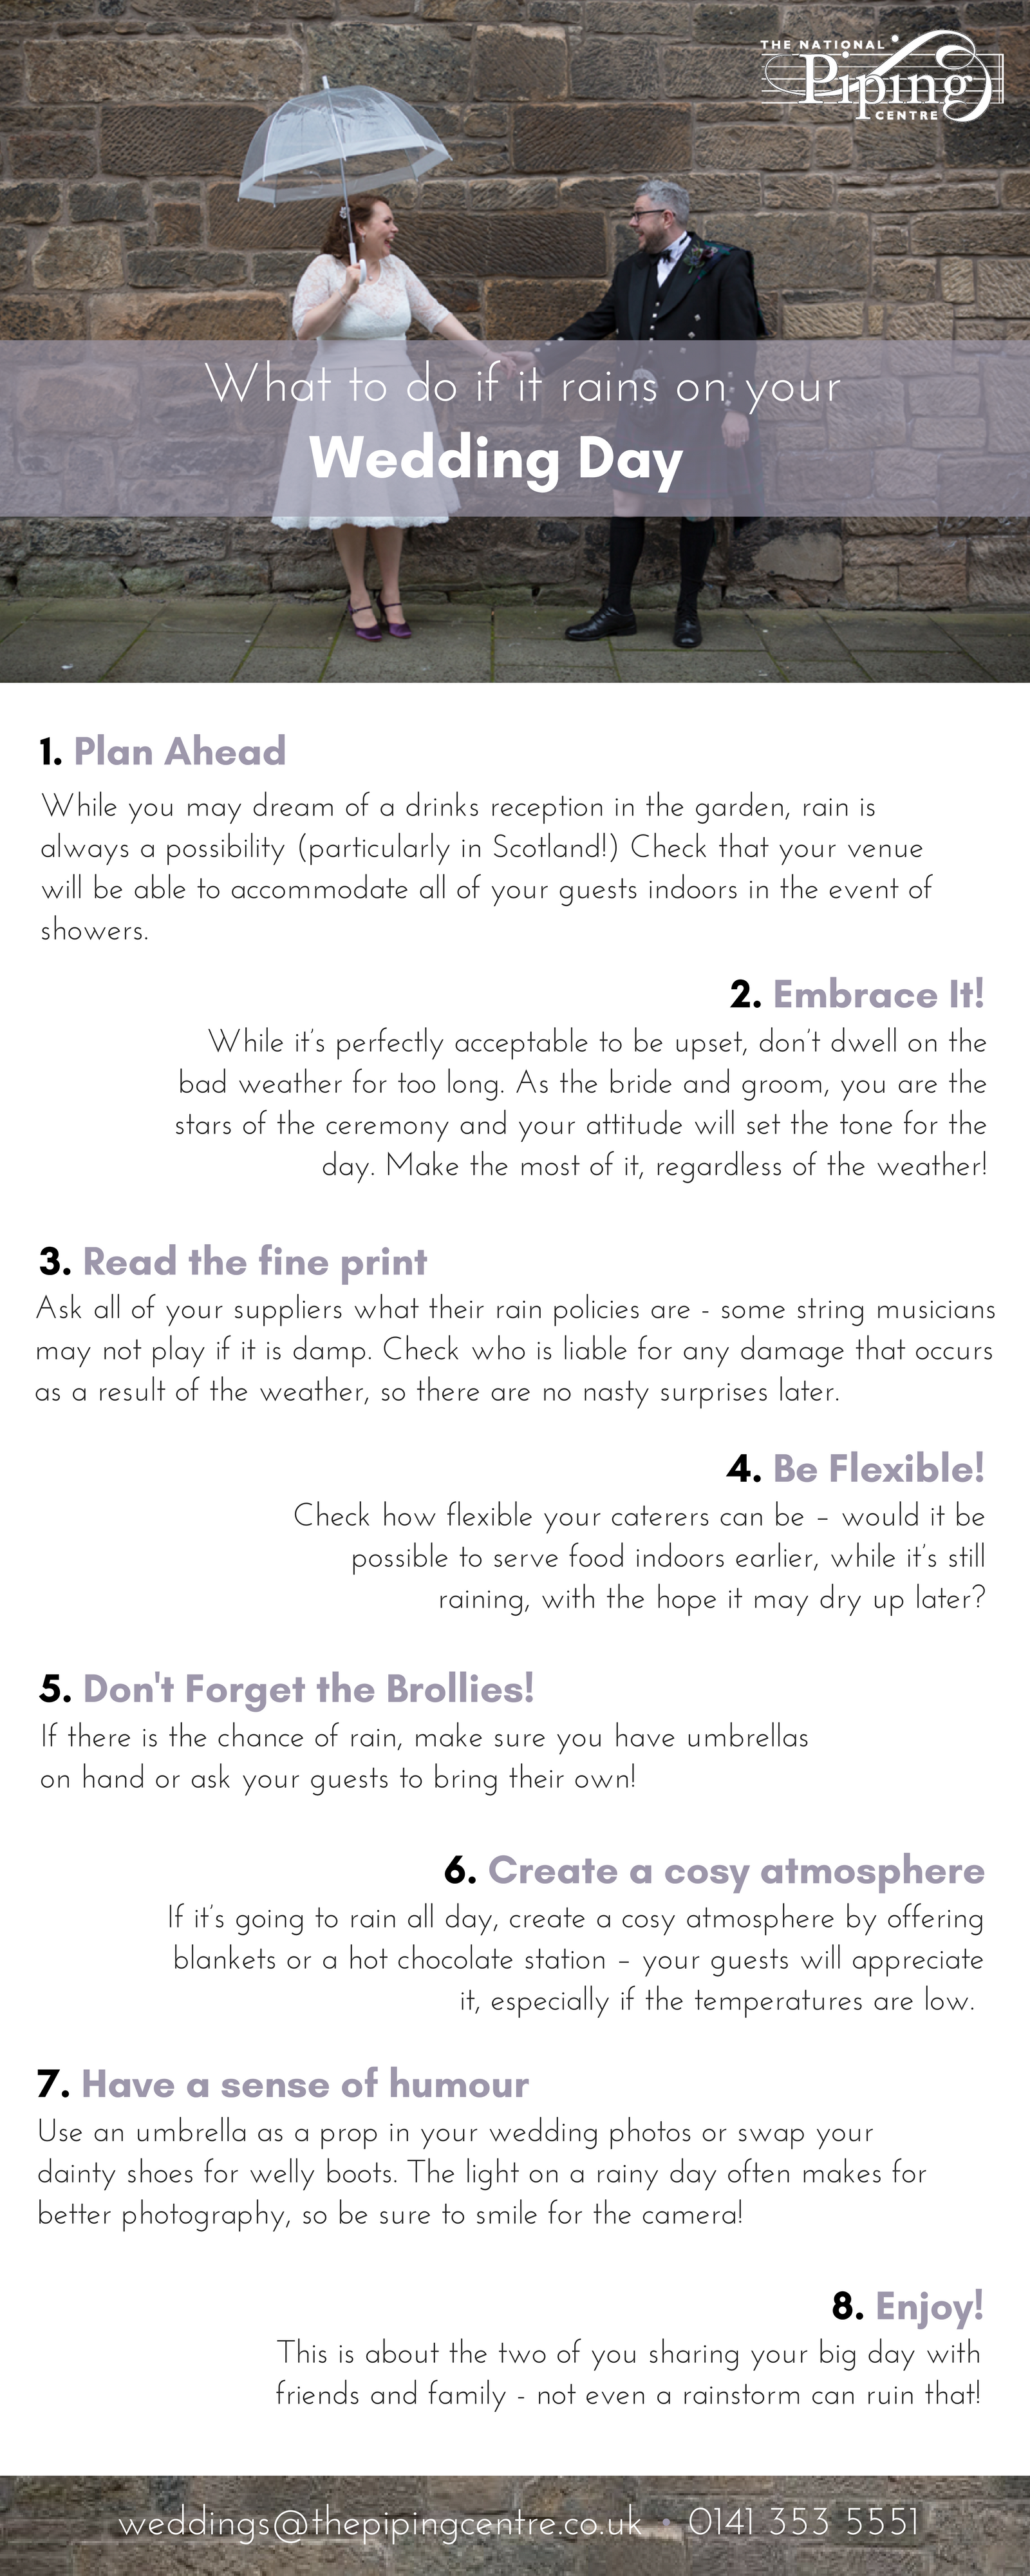 Rain On Your Wedding Day.What To Do If It Rains On Your Wedding Day The National Piping Centre